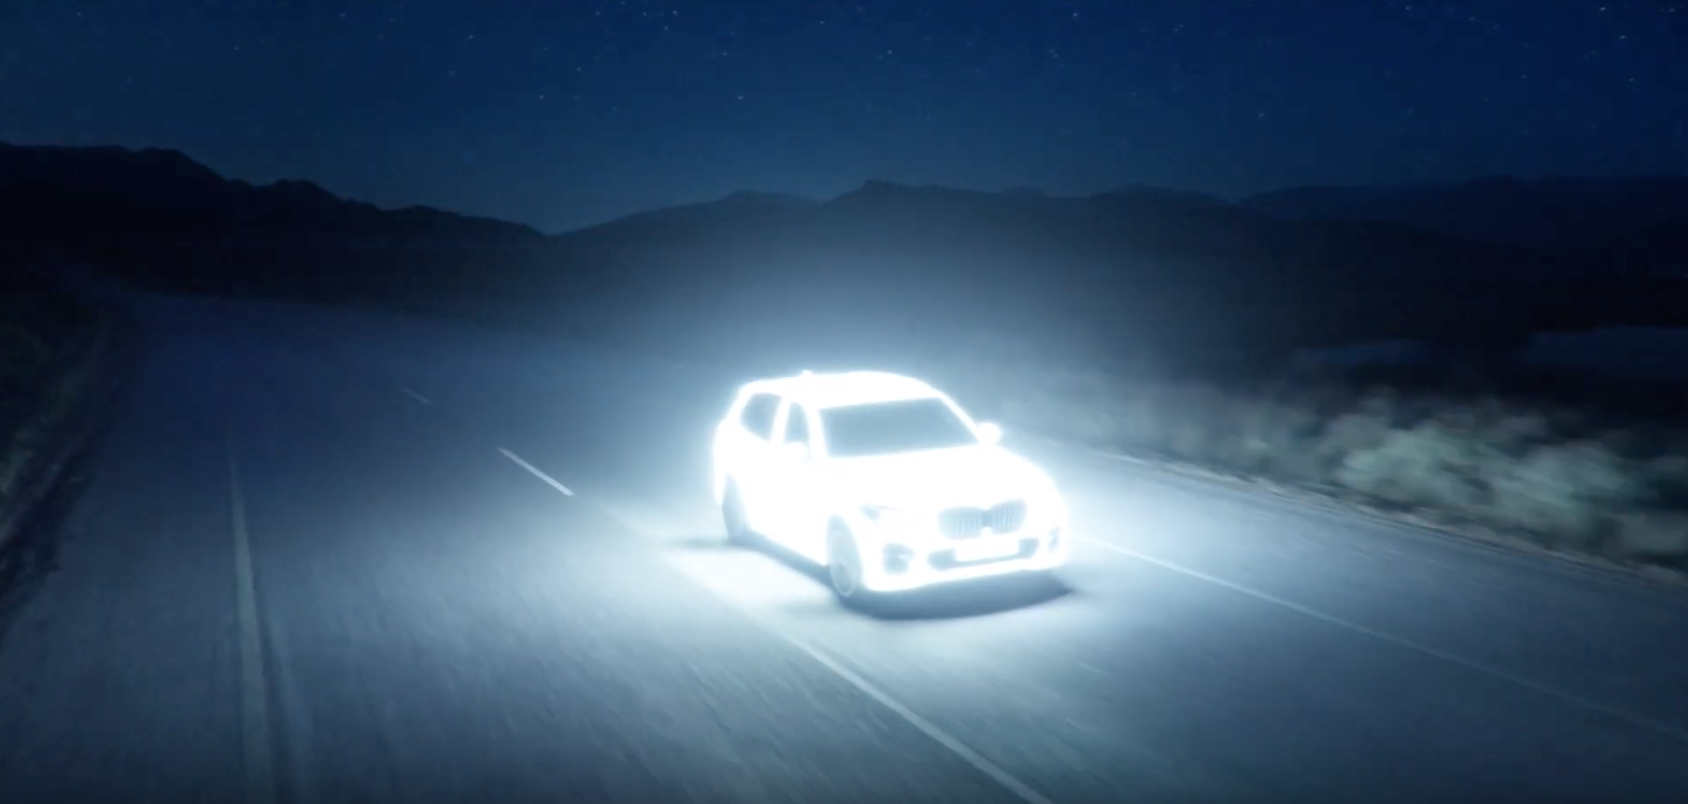 BMW's Car Lights Up The Road In This Futuristic Ad